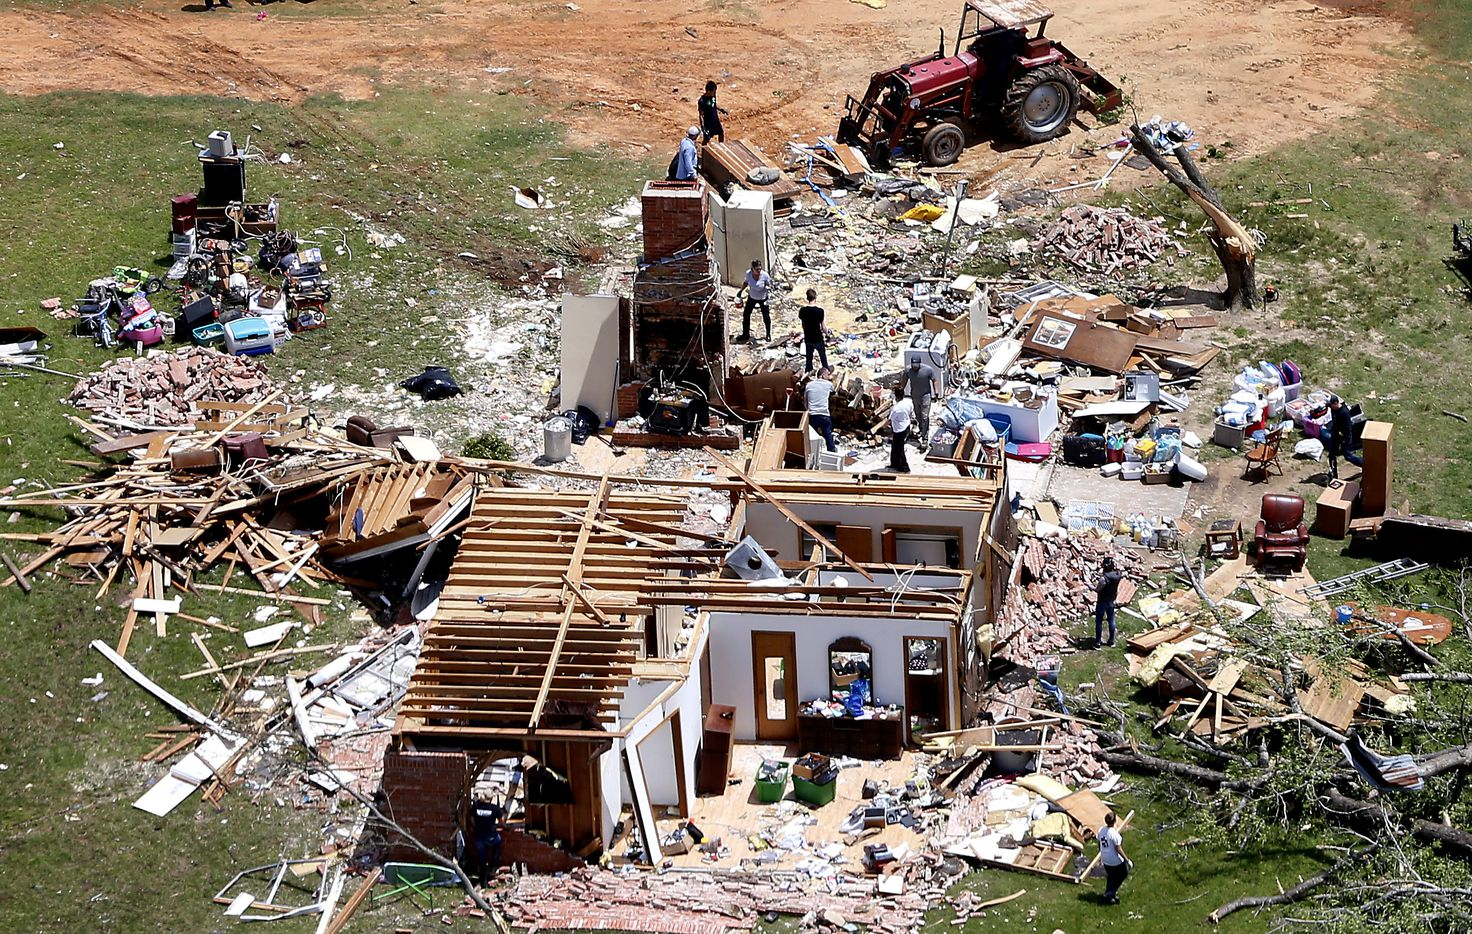 People clean up the debris inside homes destroyed by yesterday's tornado in Emory, Texas, Sunday, April 30, 2017.